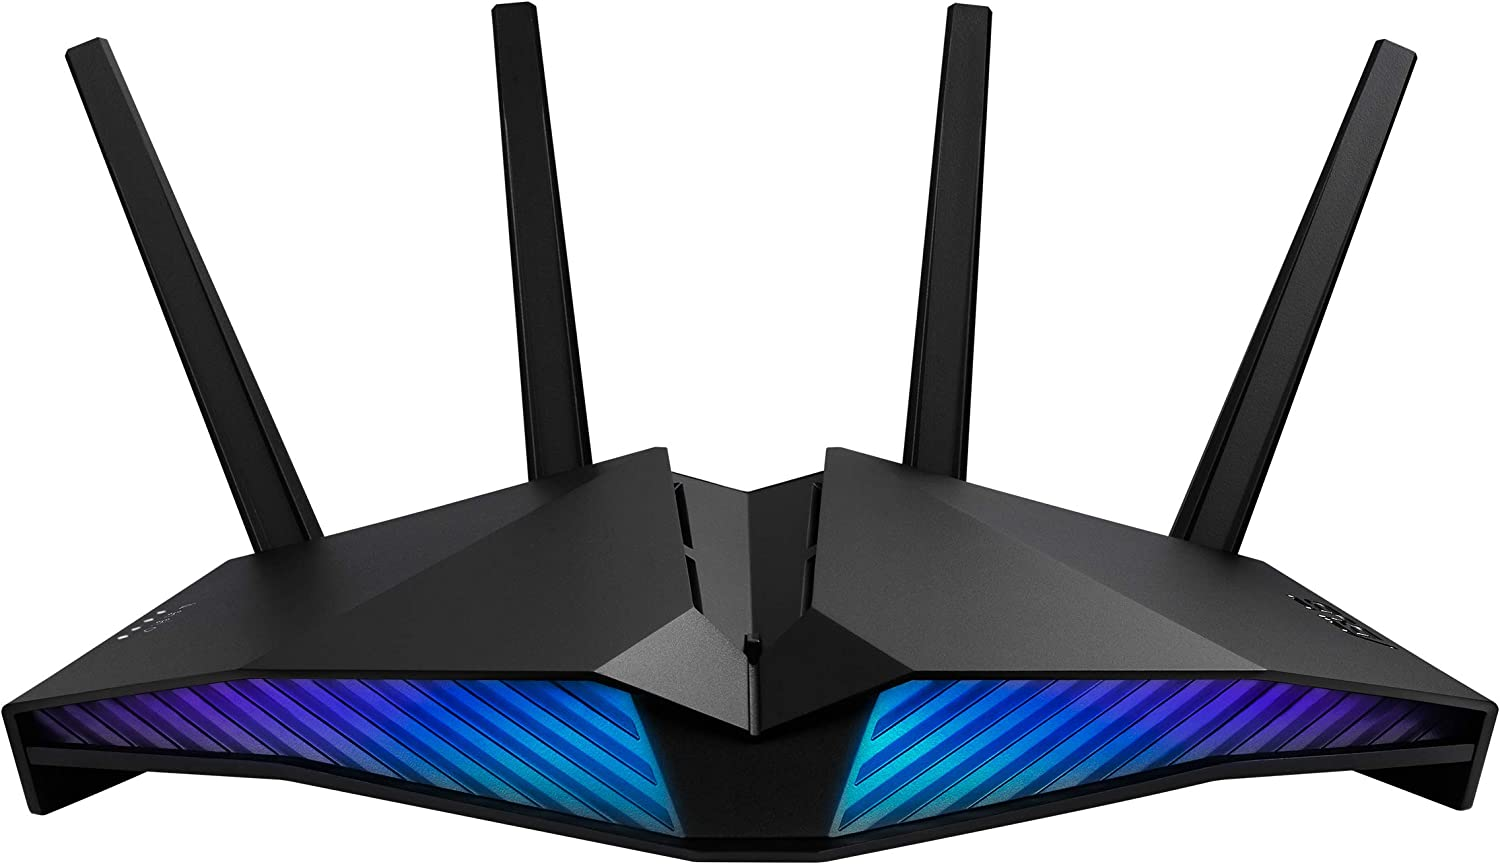 ASUS RT-AX82U AX5400 Dual-Band WiFi 6 Gaming Router, Game Acceleration, Mesh WiFi Support, Lifetime Free Internet Security, Dedicated Gaming Port, Mobile Game Boost, MU-MIMO, Aura RGB